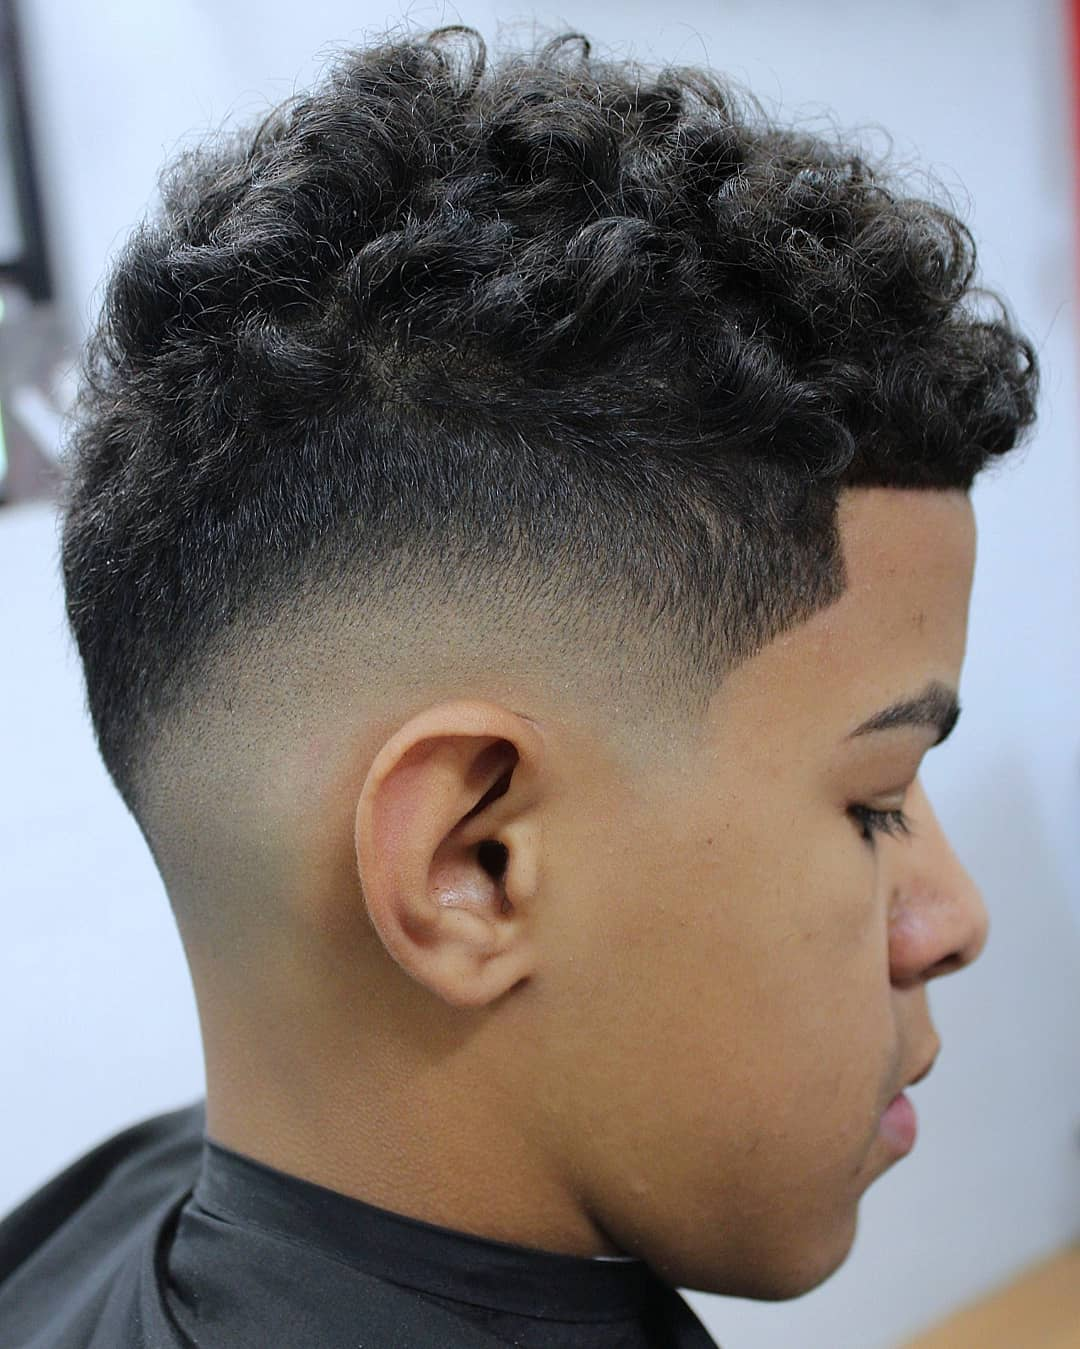 Curled Top with Mid Fade